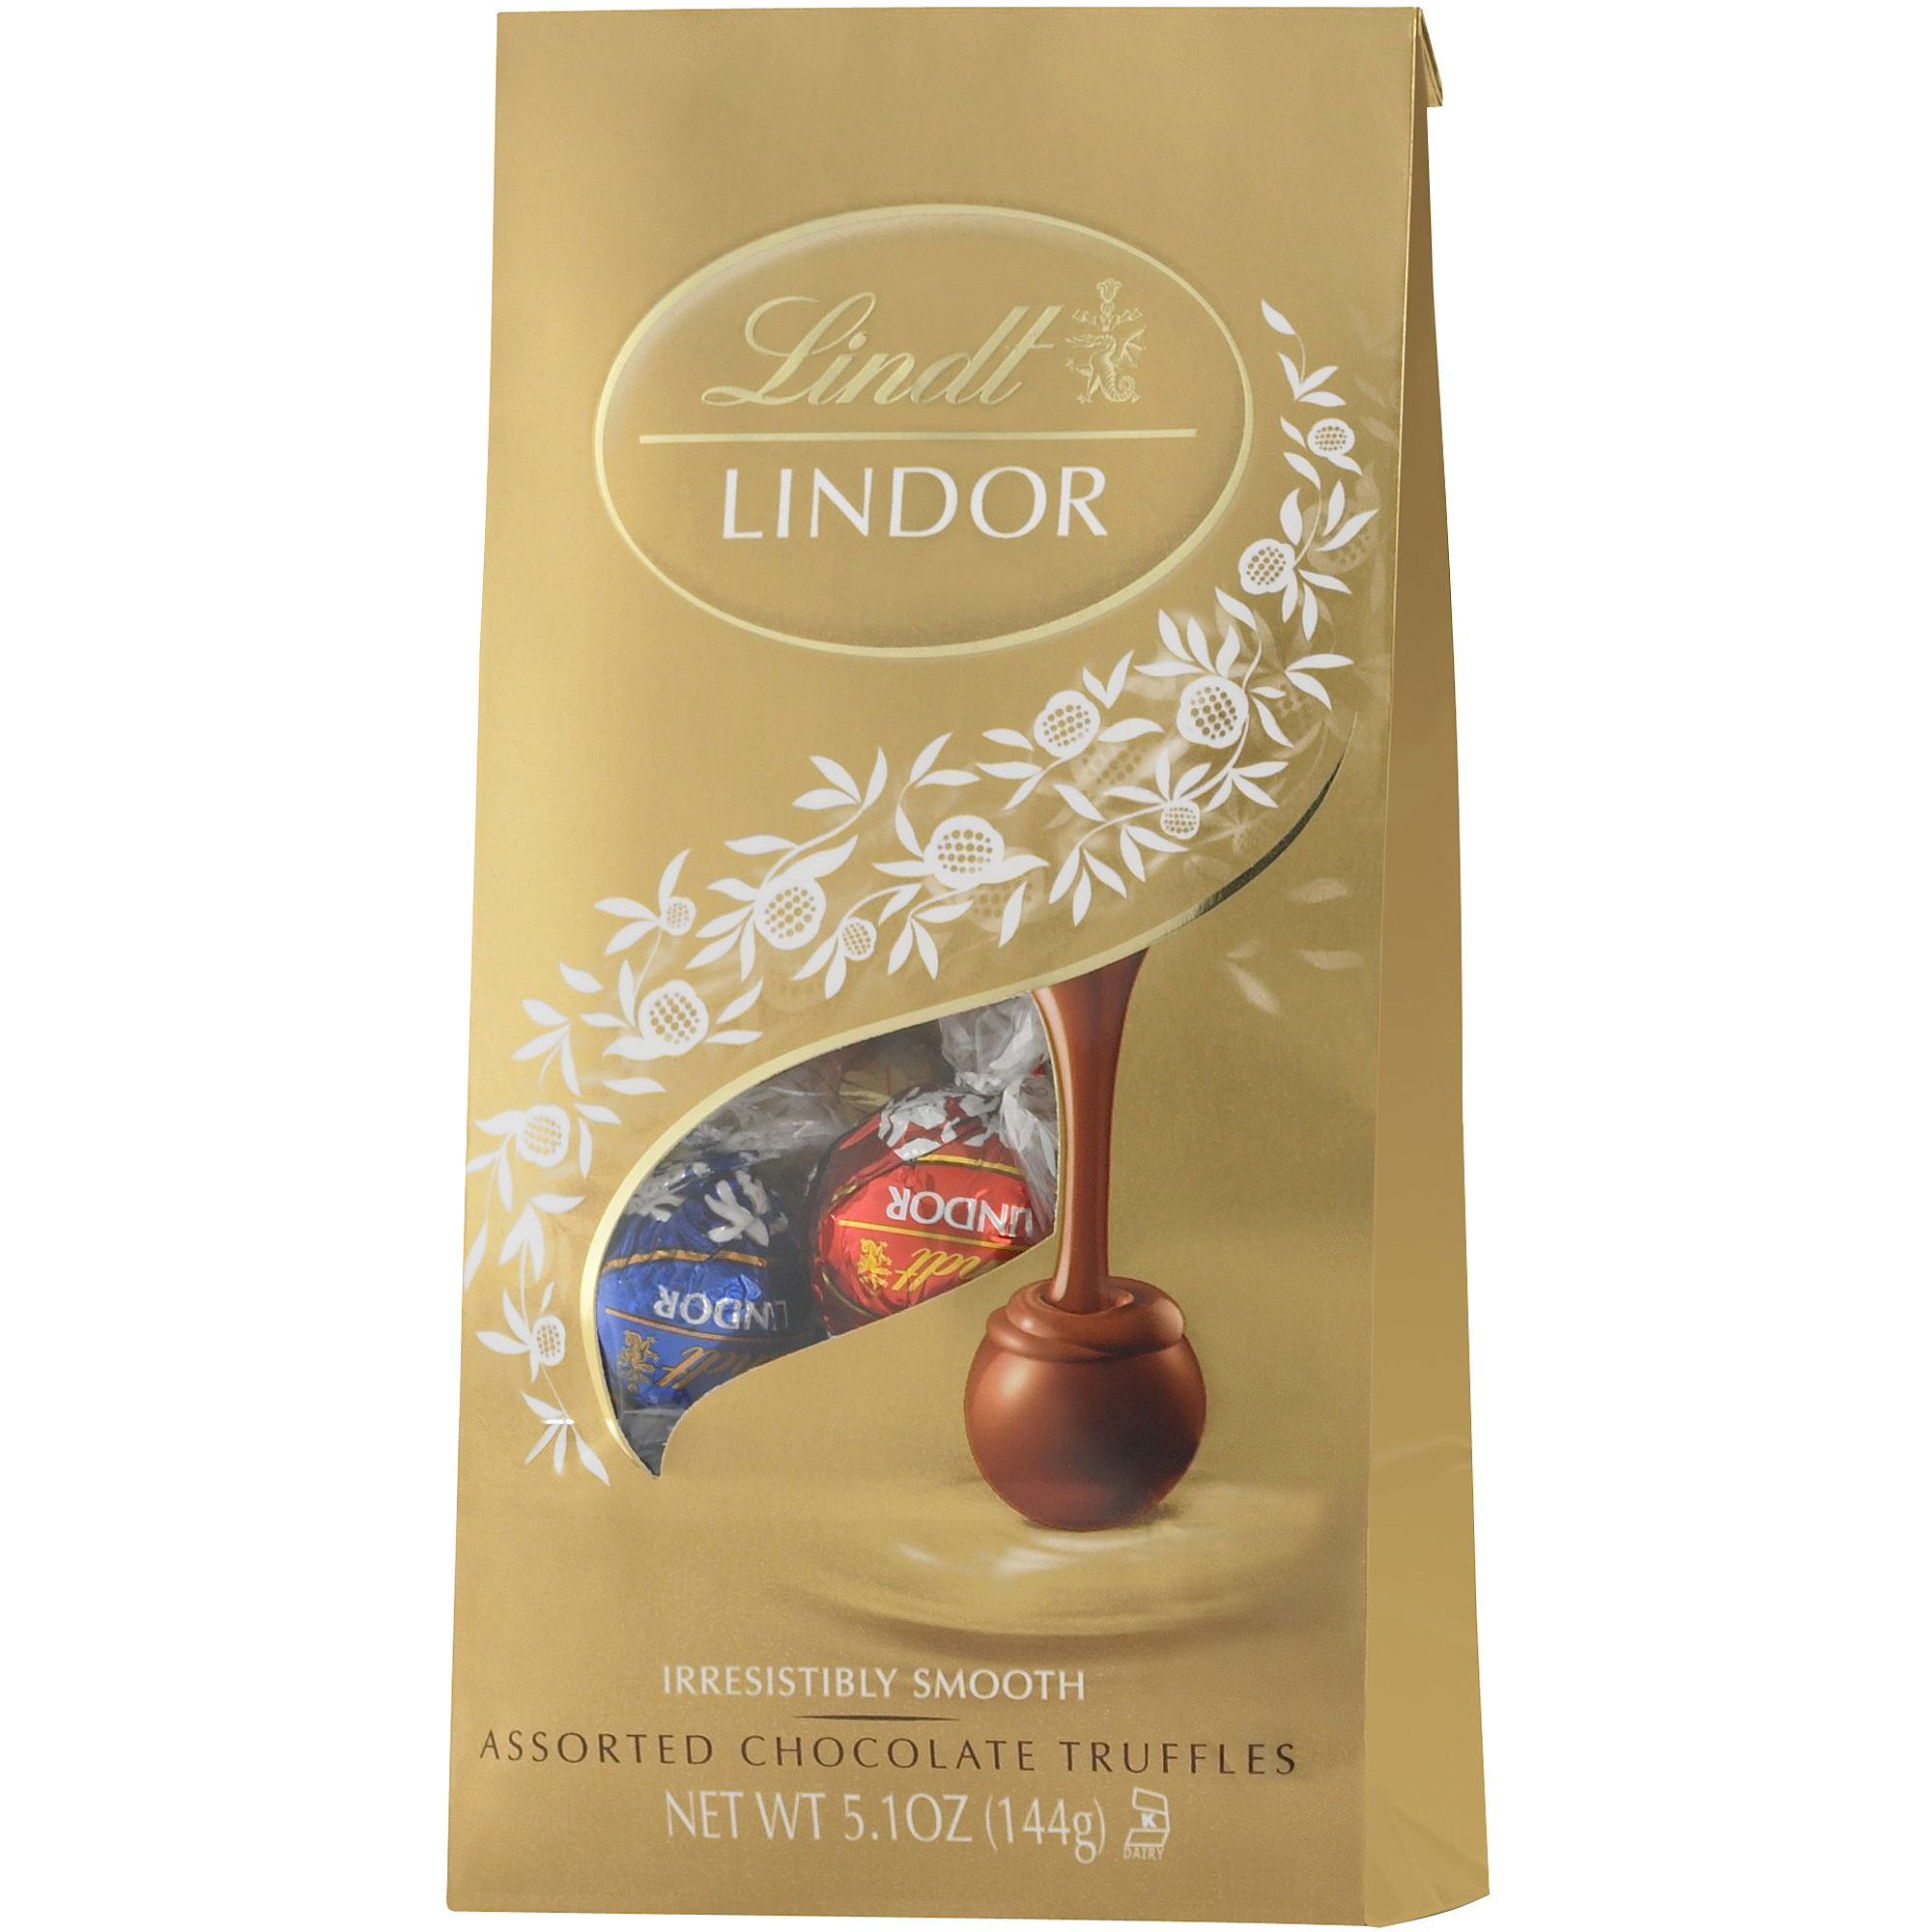 Lindt Lindor Assorted Chocolate Truffles, 5.1 OZ by Lindt & Sprungli